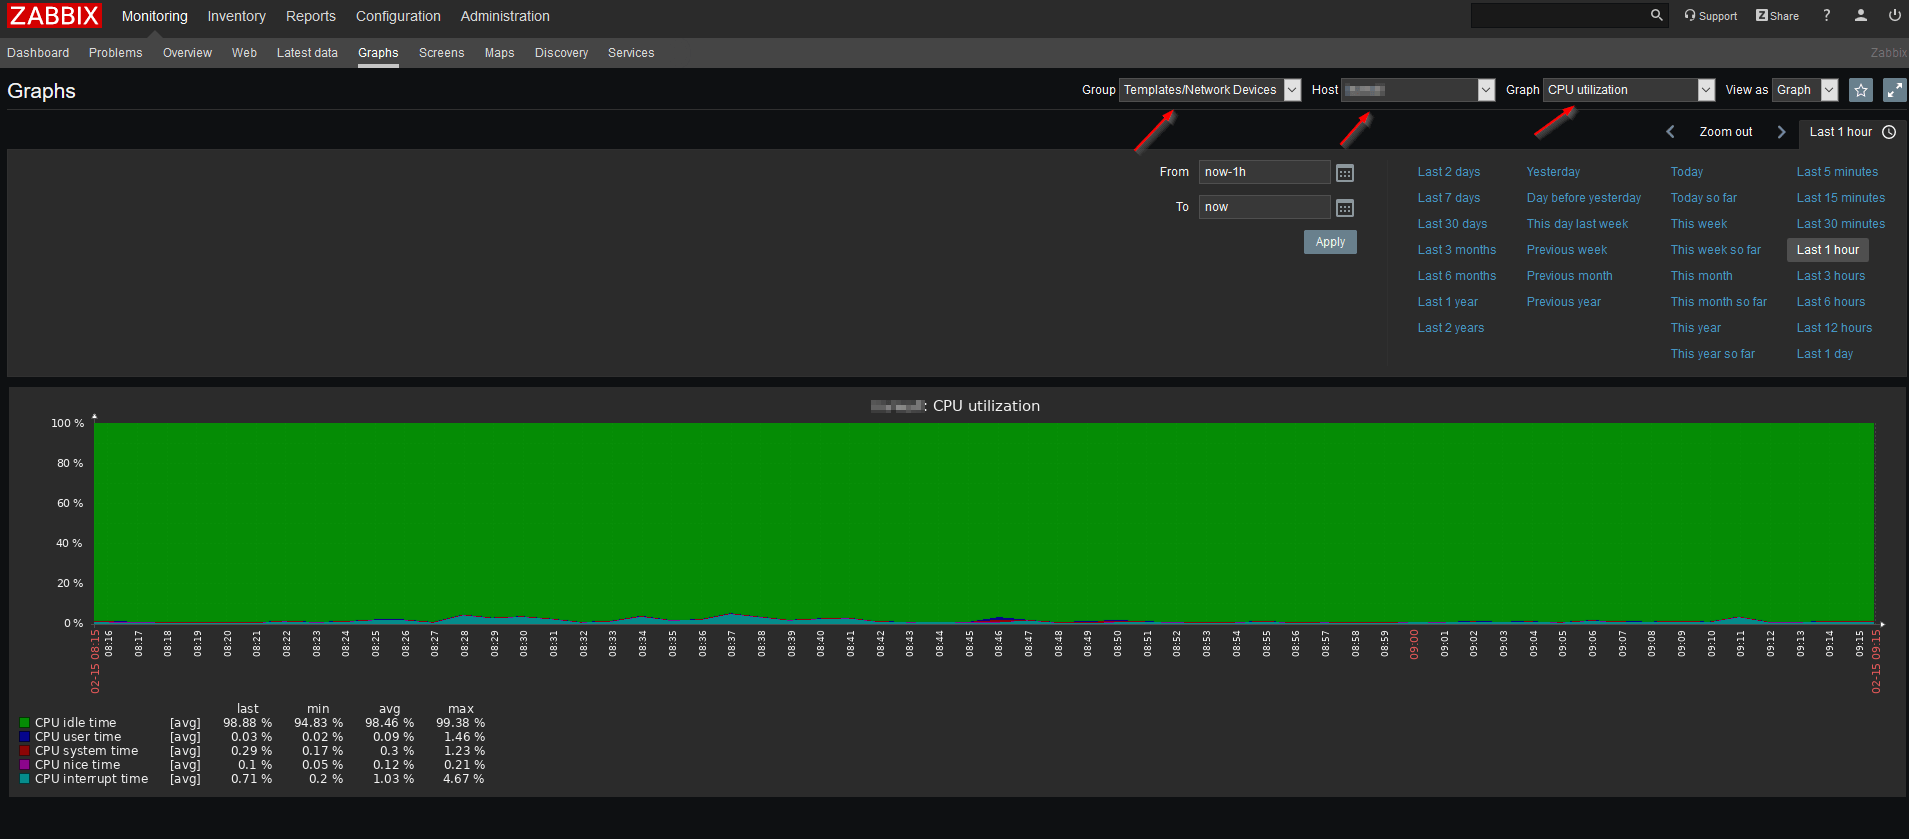 How to Monitor pfSense 2 4 with Zabbix - Ceos3c